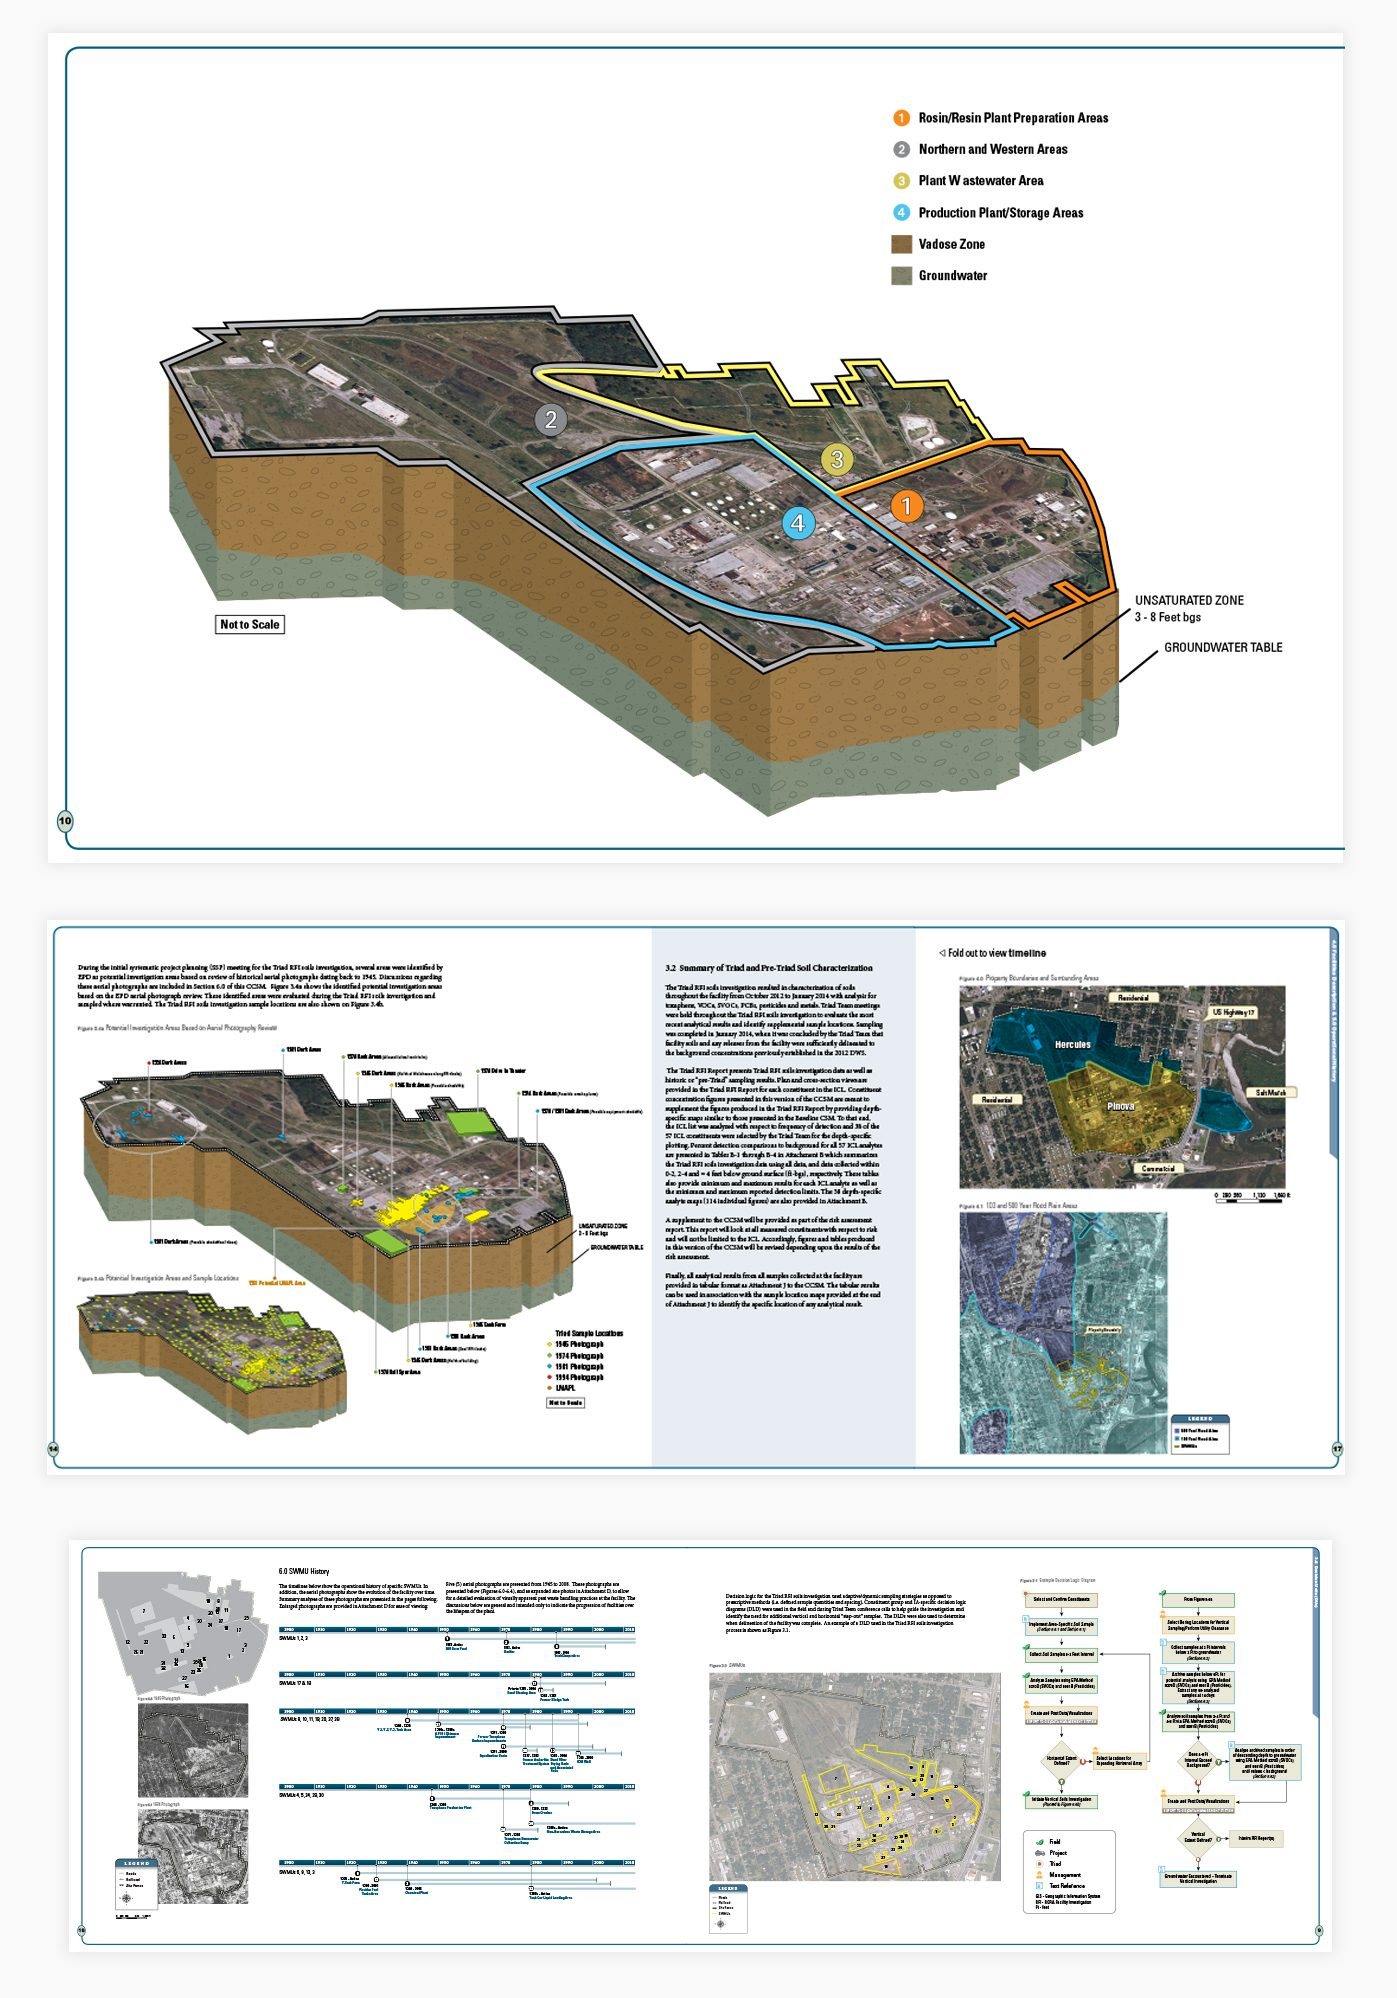 Technical Illustrations and Data Visualization